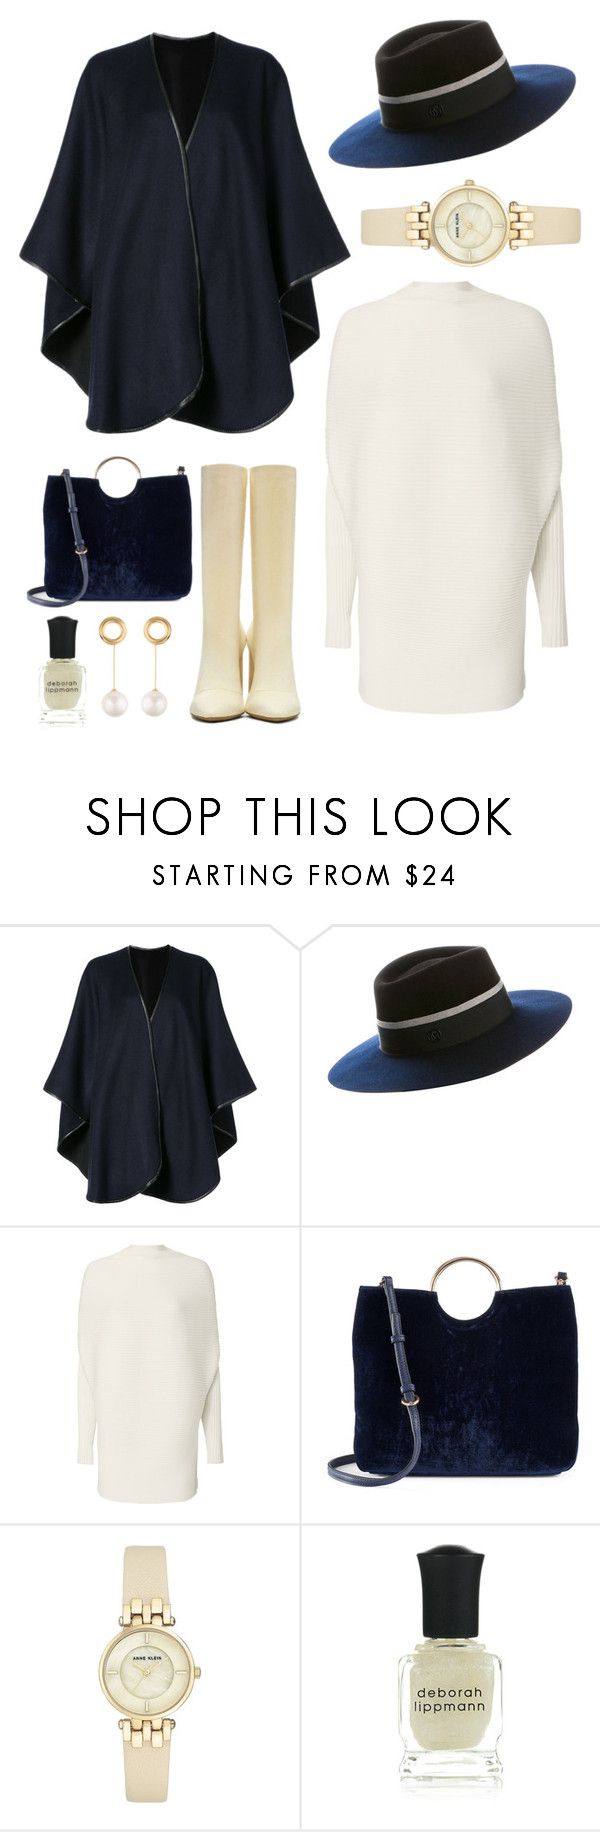 """""""Untitled #5897"""" by im-karla-with-a-k ❤ liked on Polyvore featuring Sofiacashmere, Maison Michel, Designers Remix, LC Lauren Conrad, Anne Klein, Deborah Lippmann and Joanna Laura Constantine"""